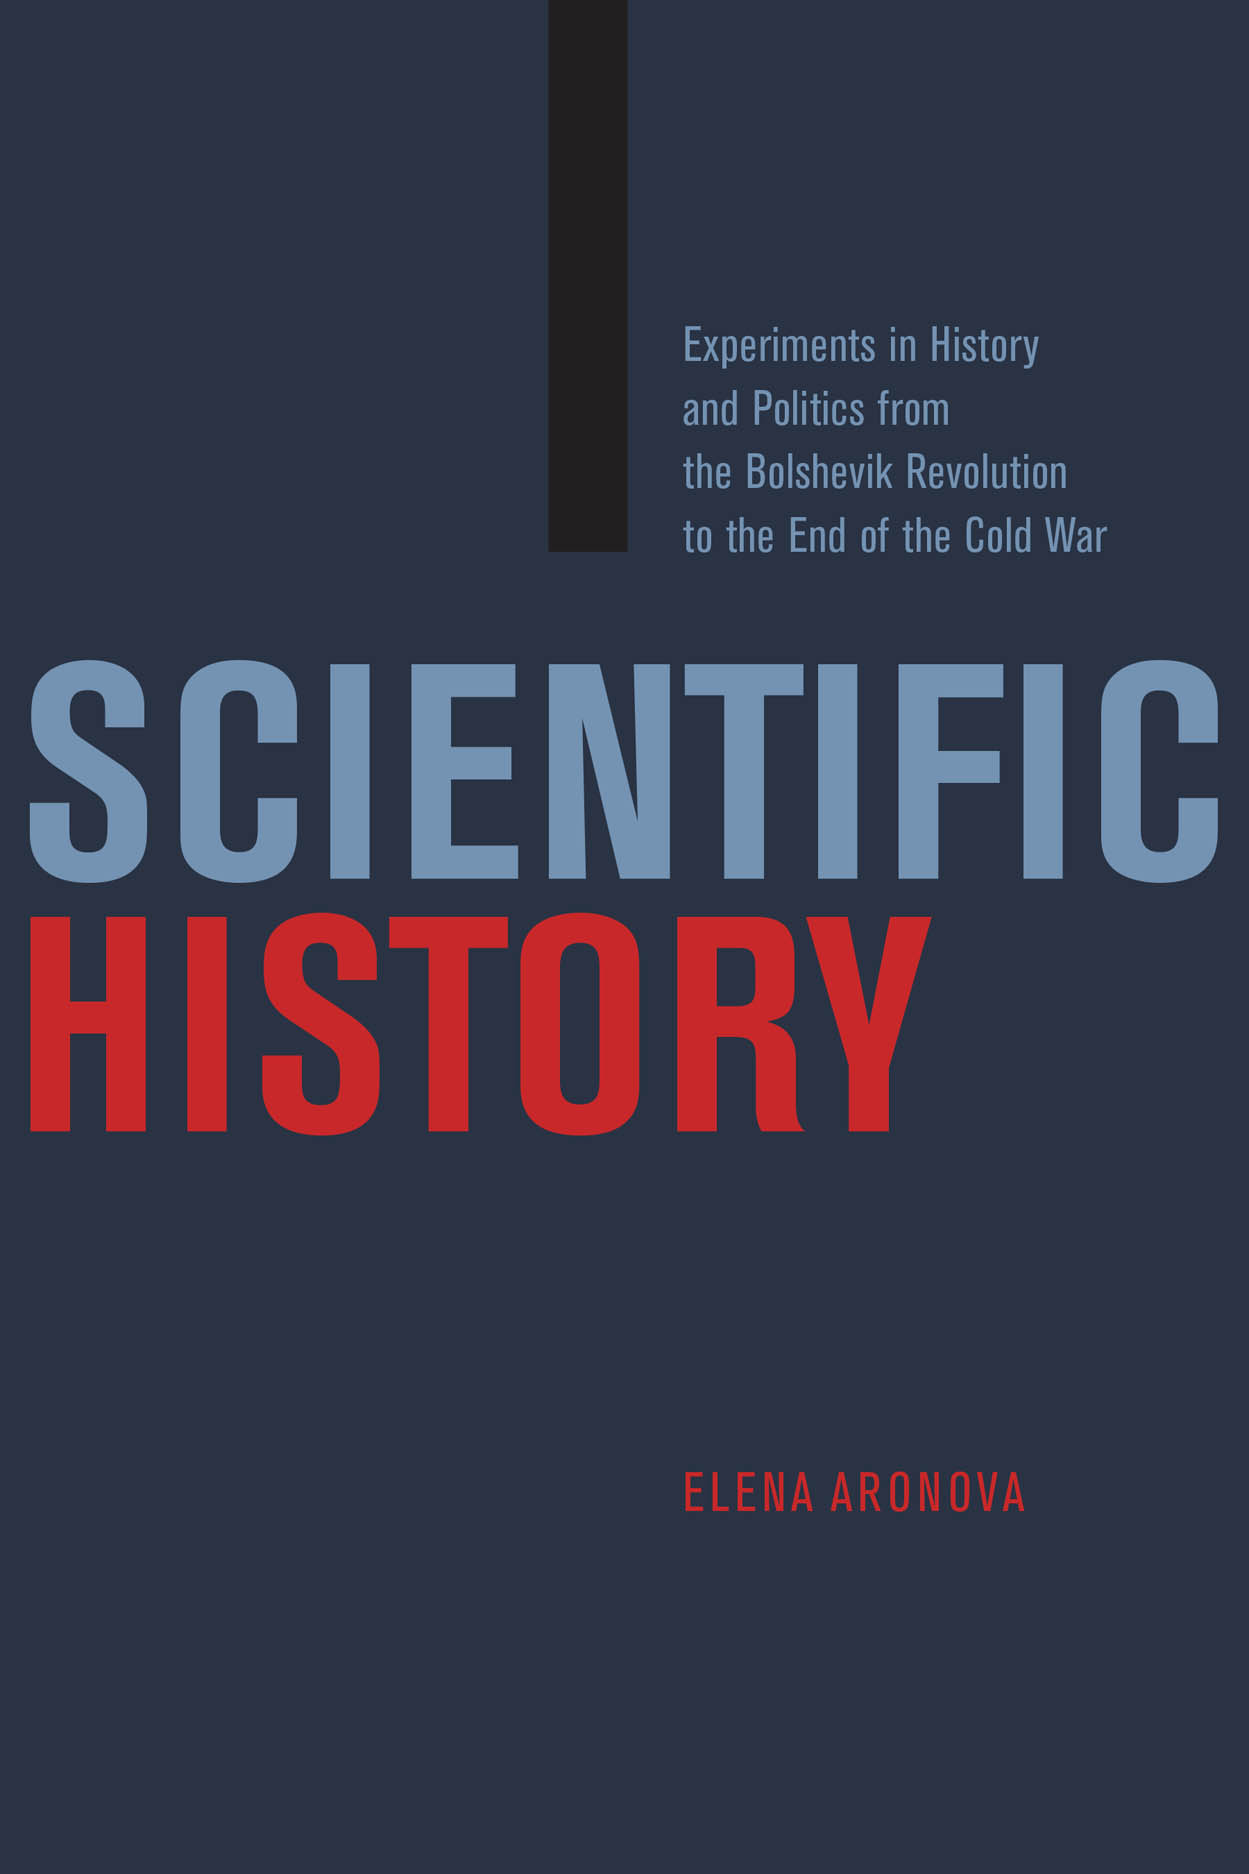 Scientific History: Experiments in History and Politics from the Bolshevik Revolution to the End of the Cold War